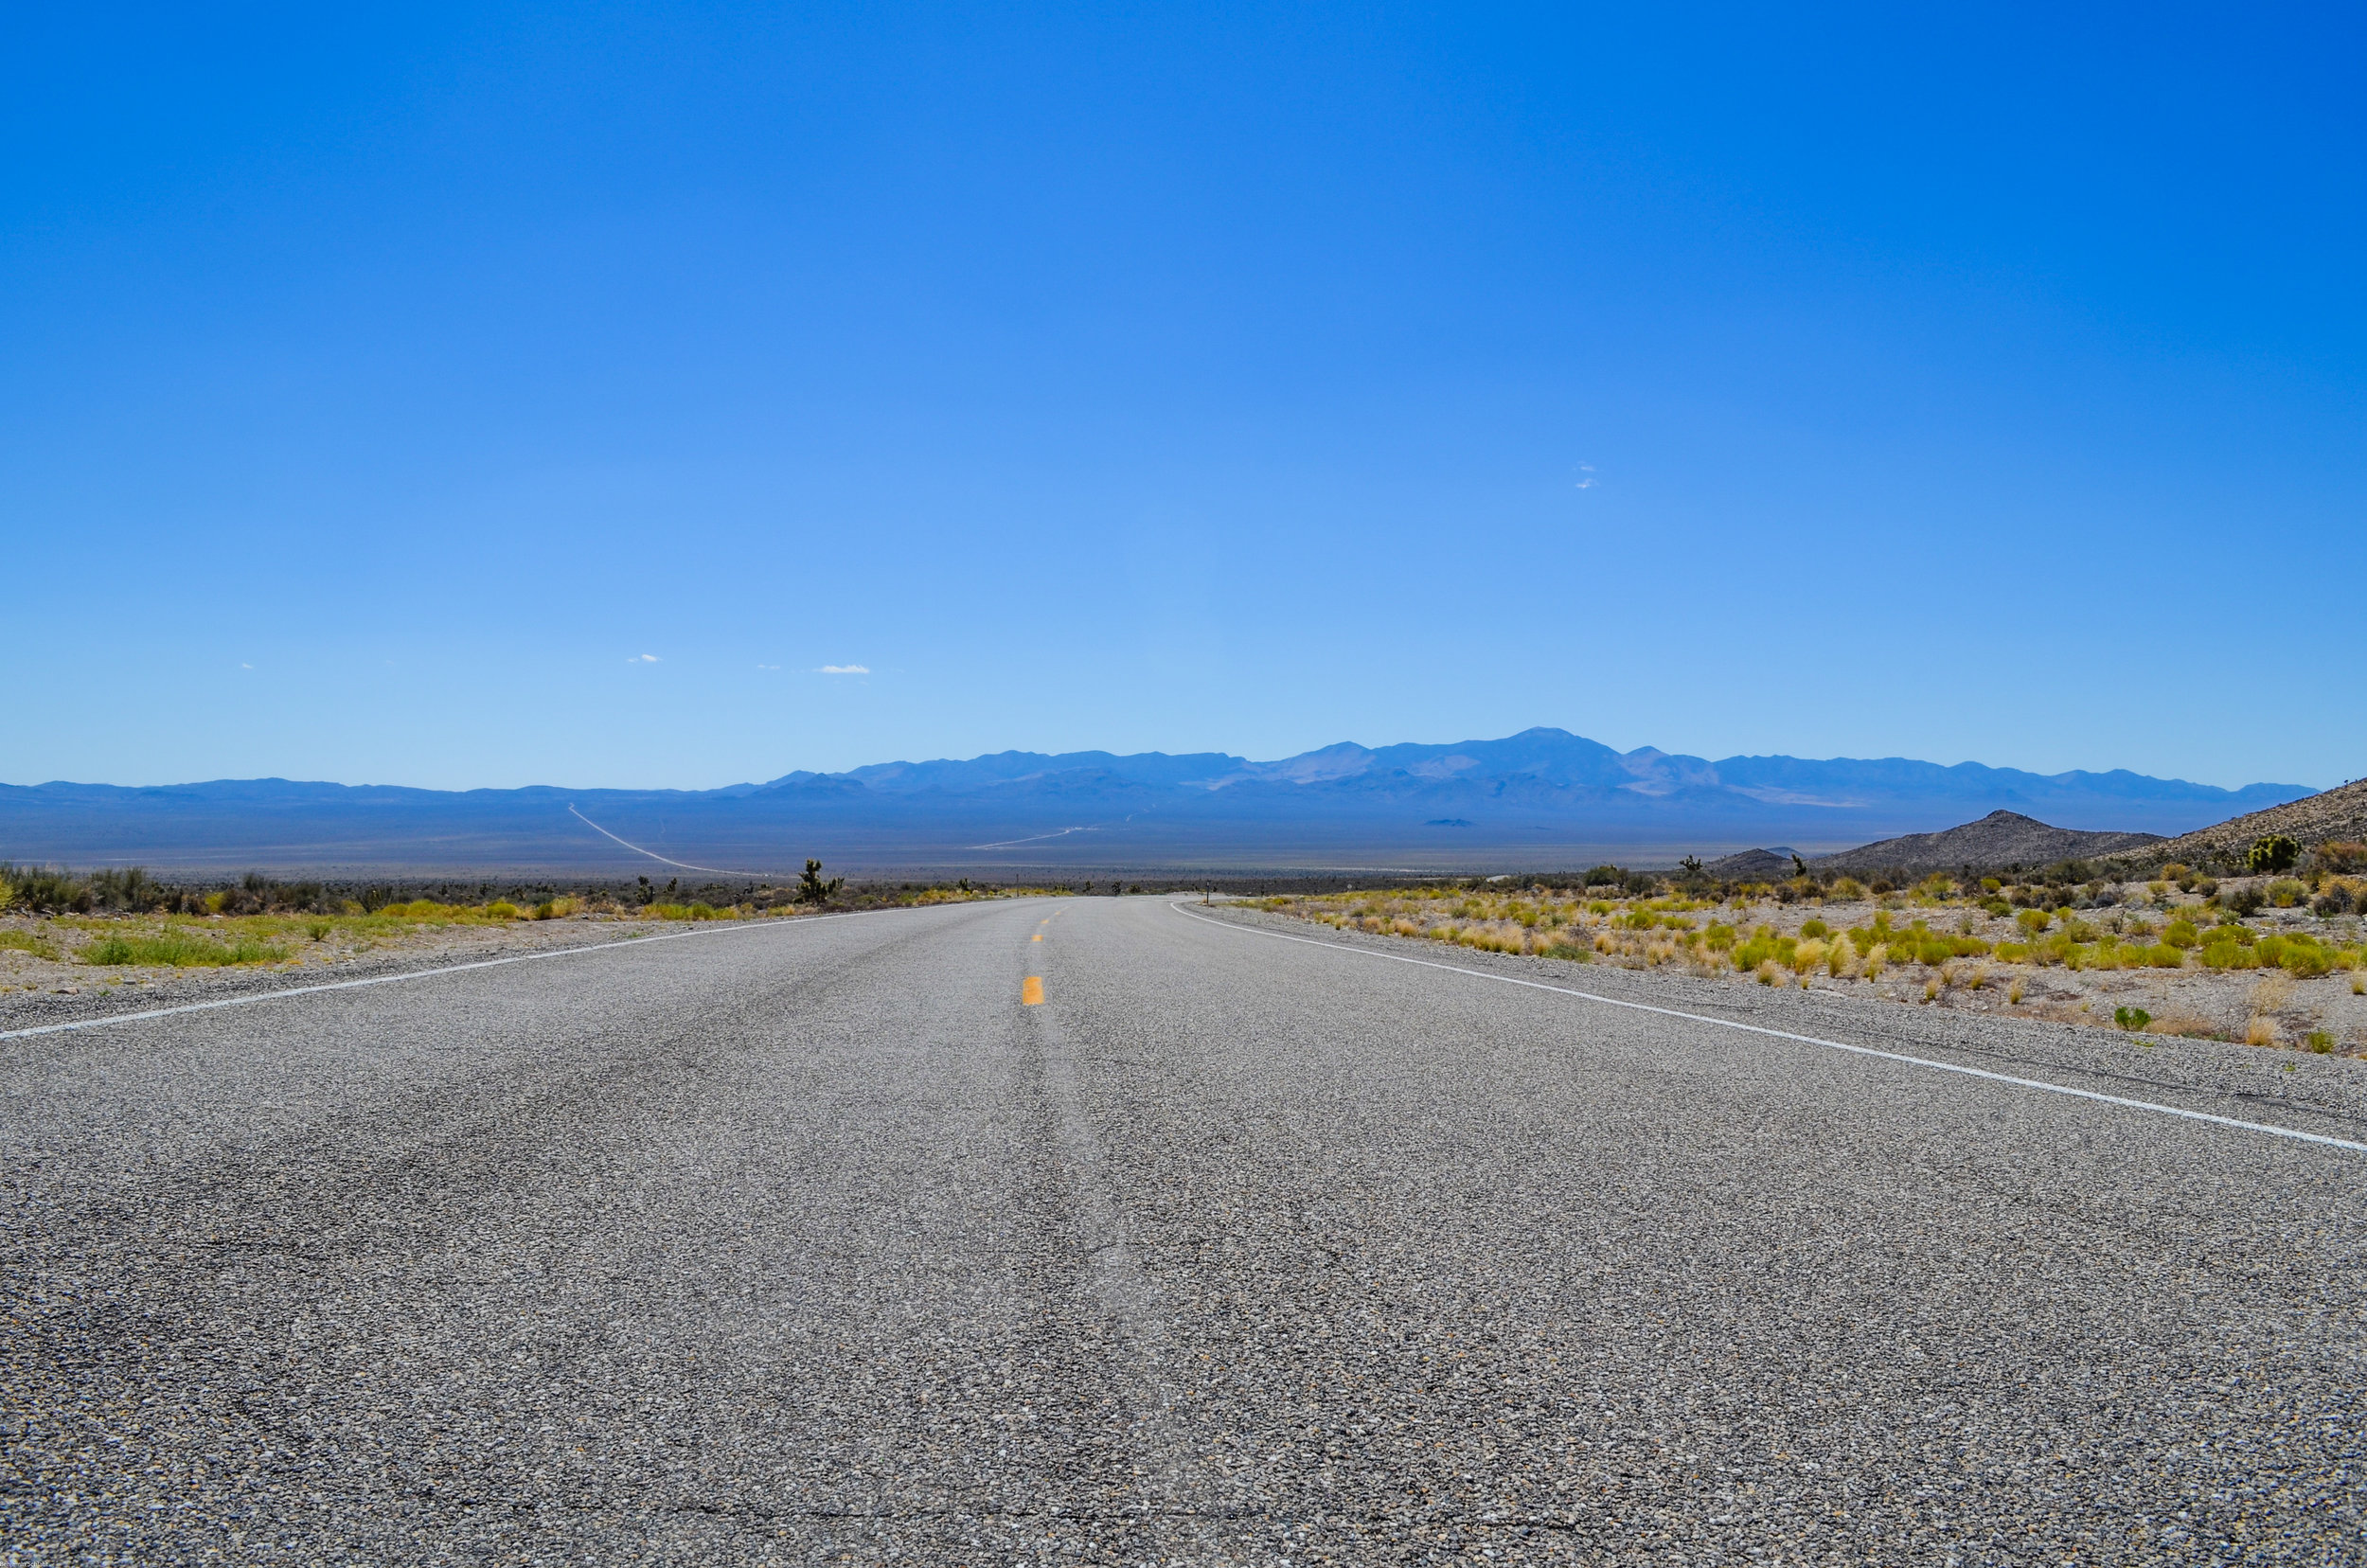 Mountains embrace a beautifully endless road